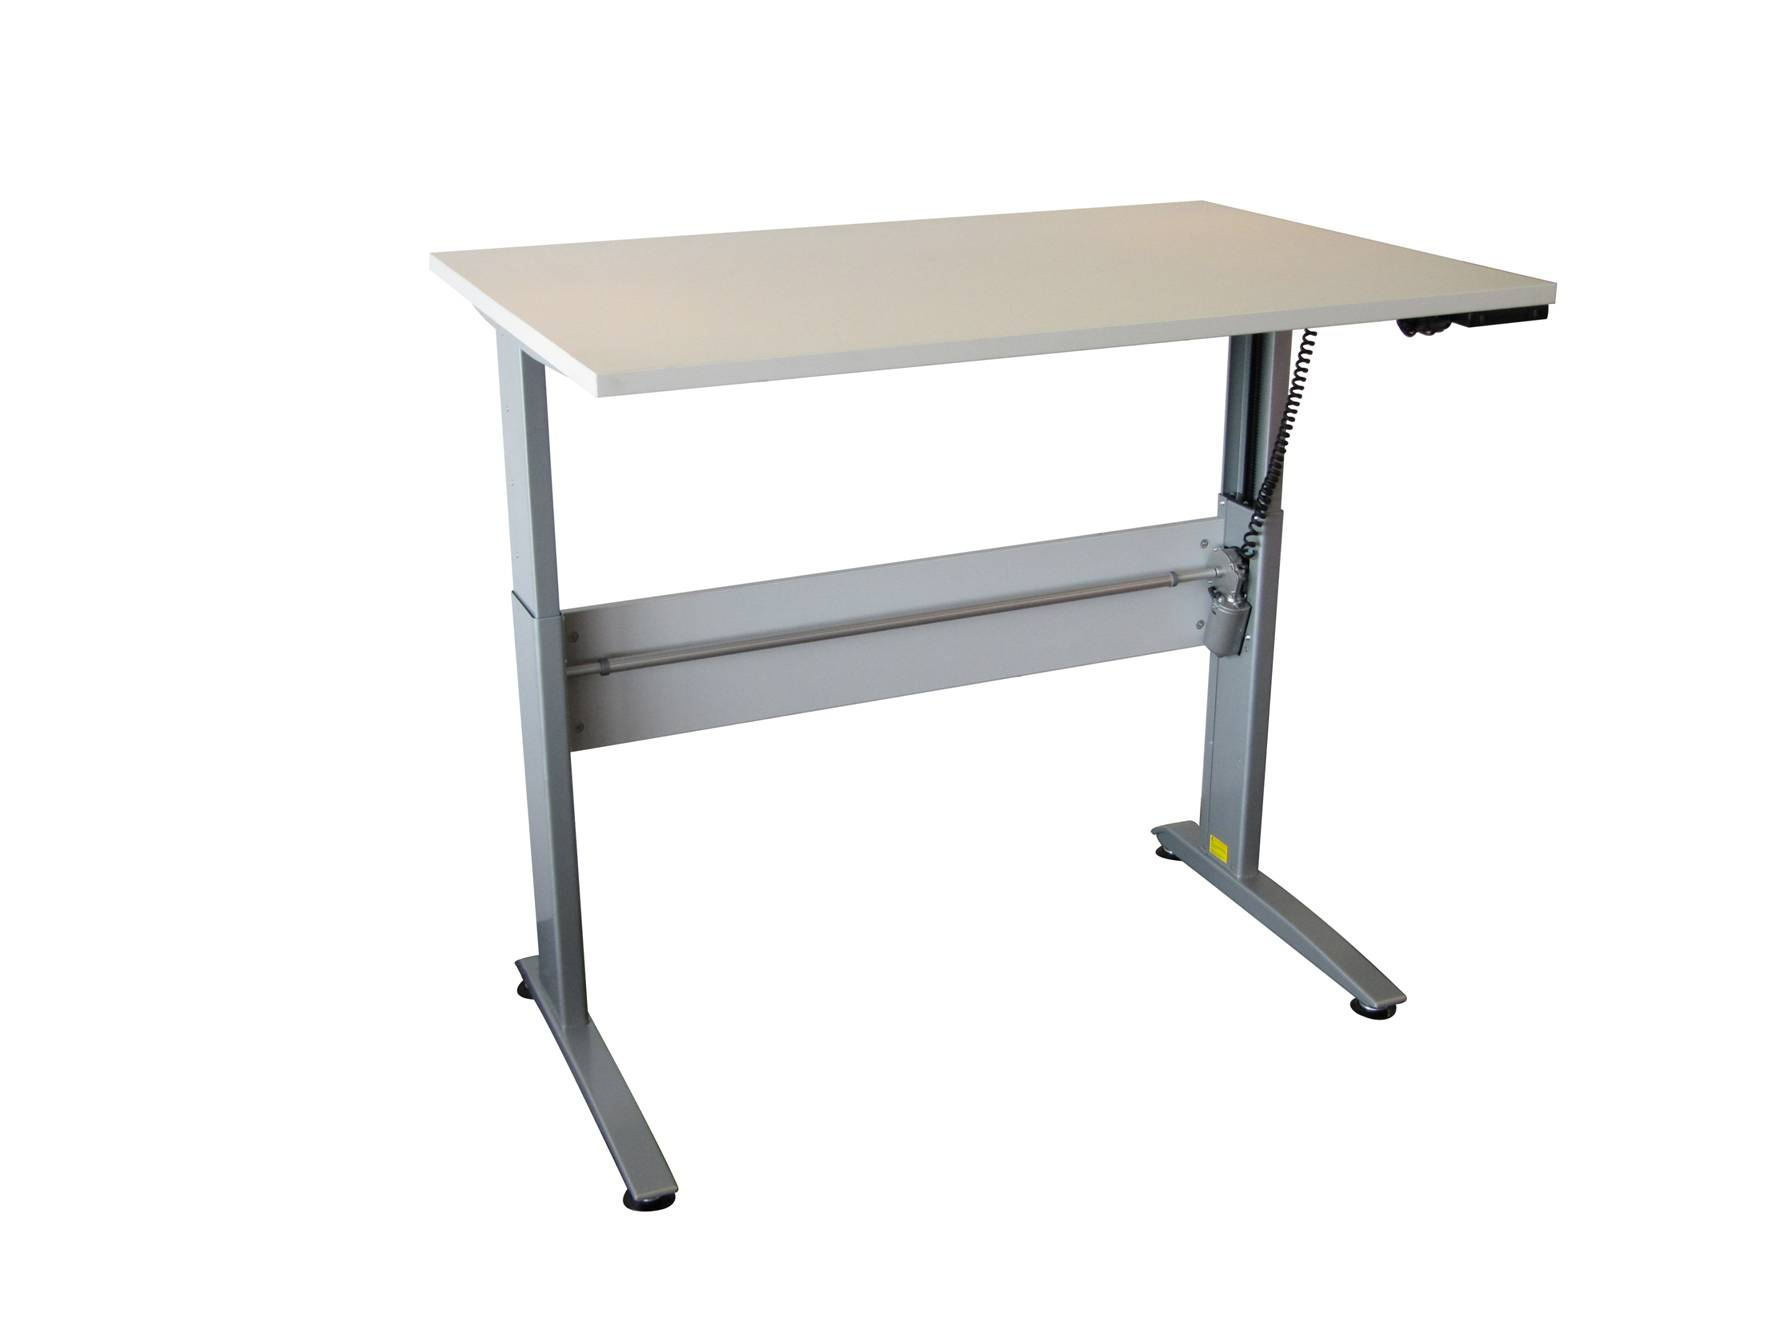 Shop Standing Desks Ergonomic Chairs Monitor Arms Home